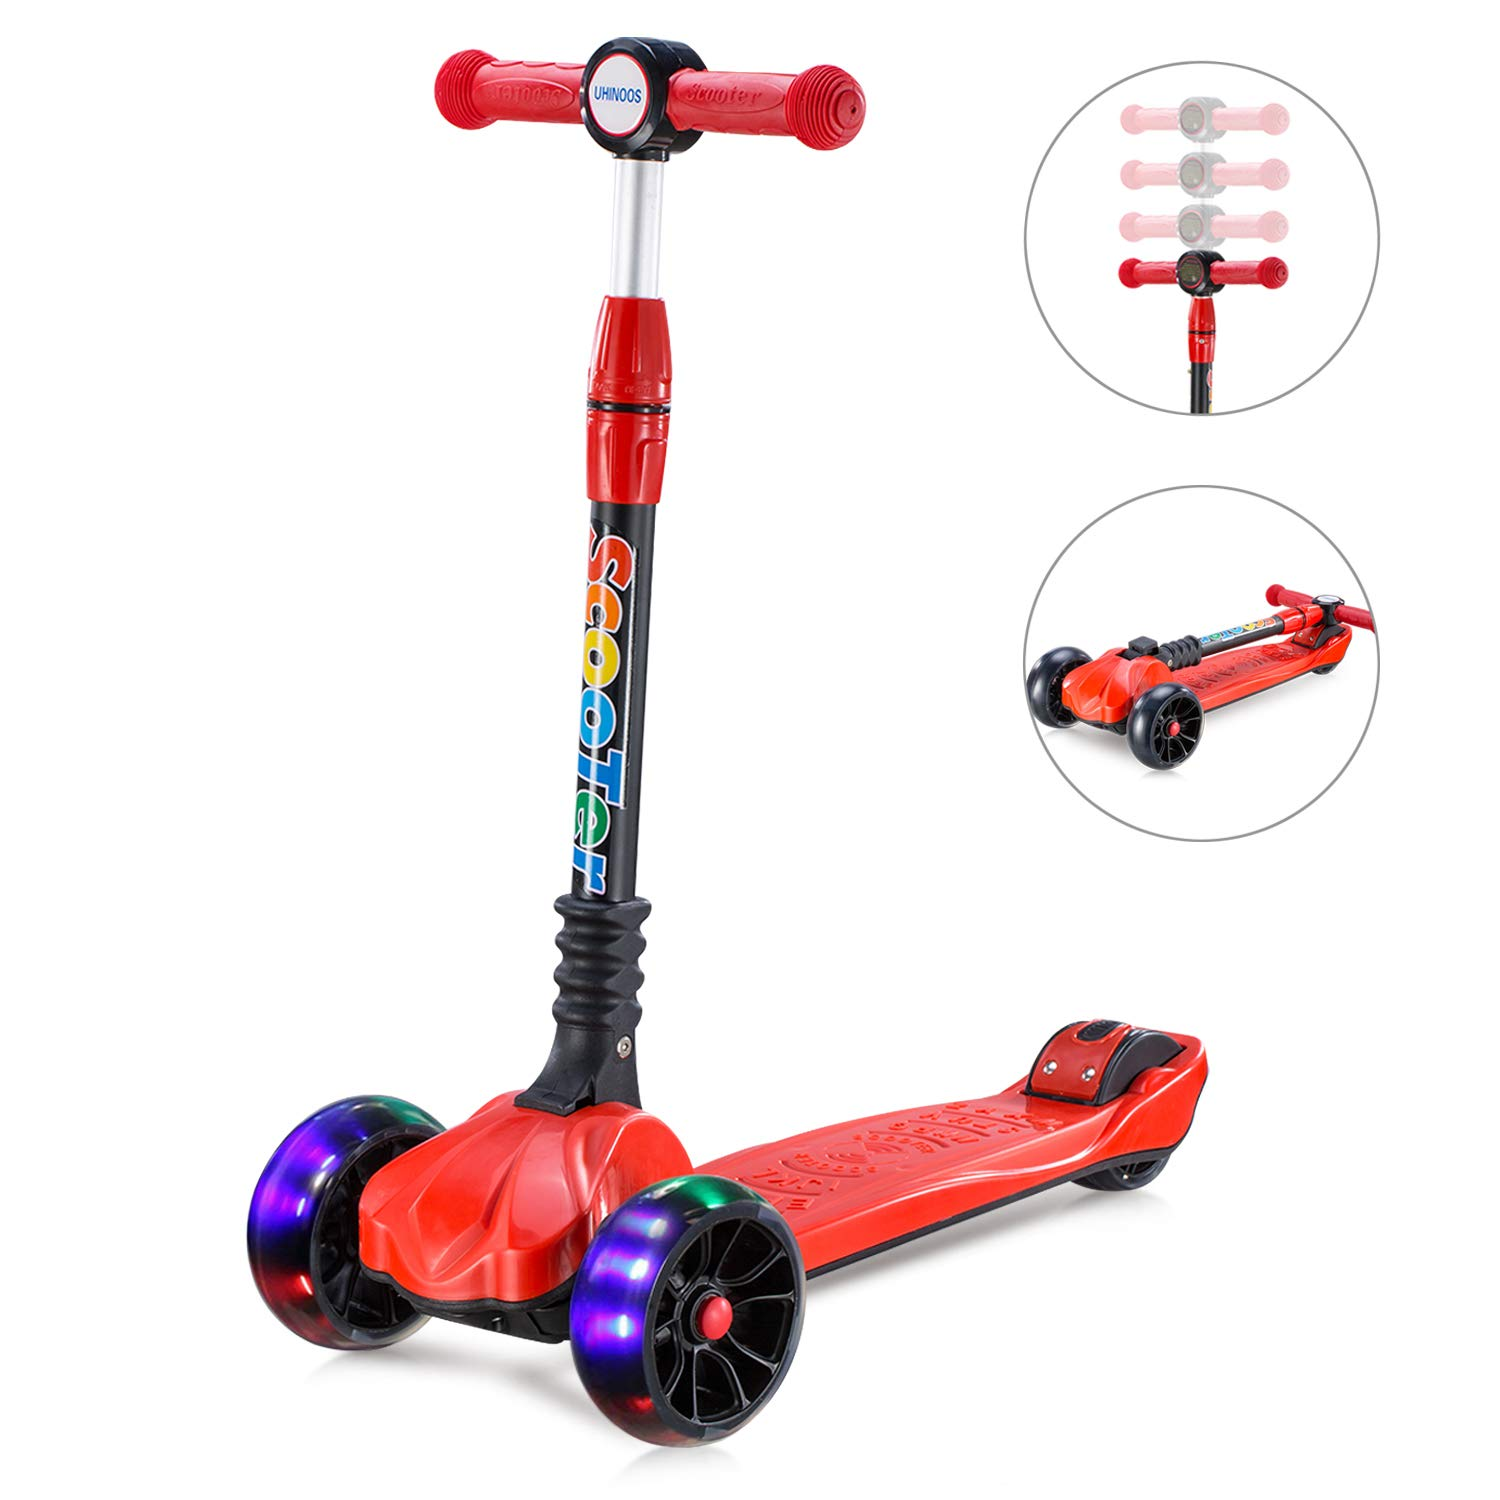 UHINOOS Kick Scooter for Kids&Toddlers-4 Adjustable Height 3 Wheel Scooters for Kids Scooter Best Gifts for Children from 3-12 Years (red) by UHINOOS